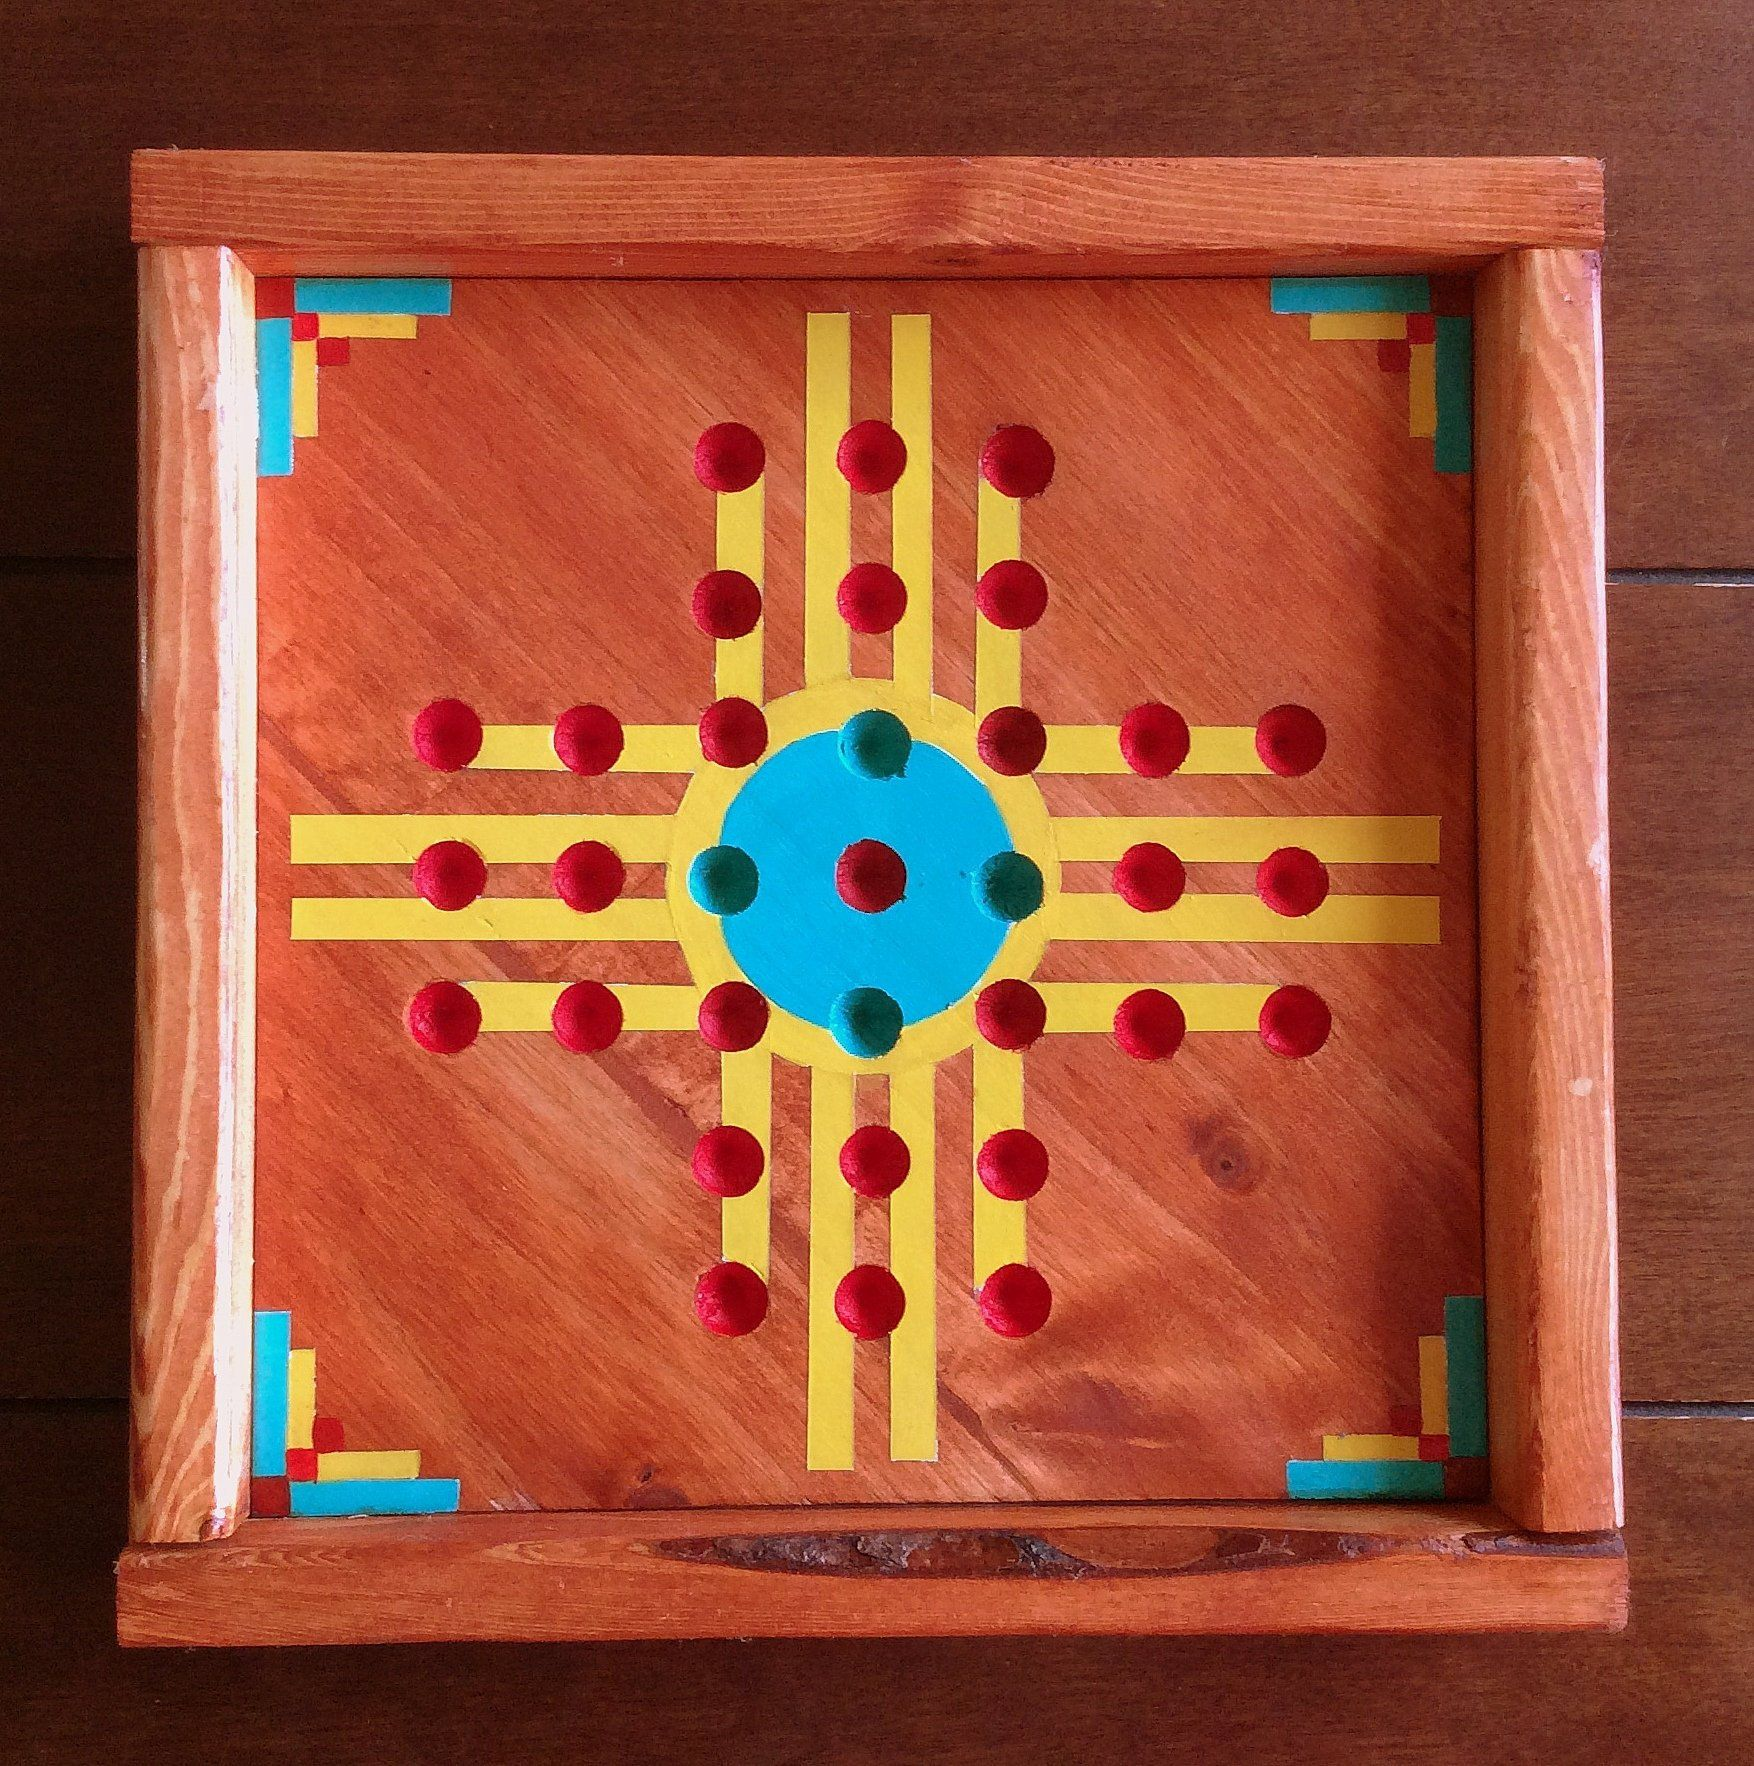 Marble Solitaire, think jump game, marble game, New Mexico